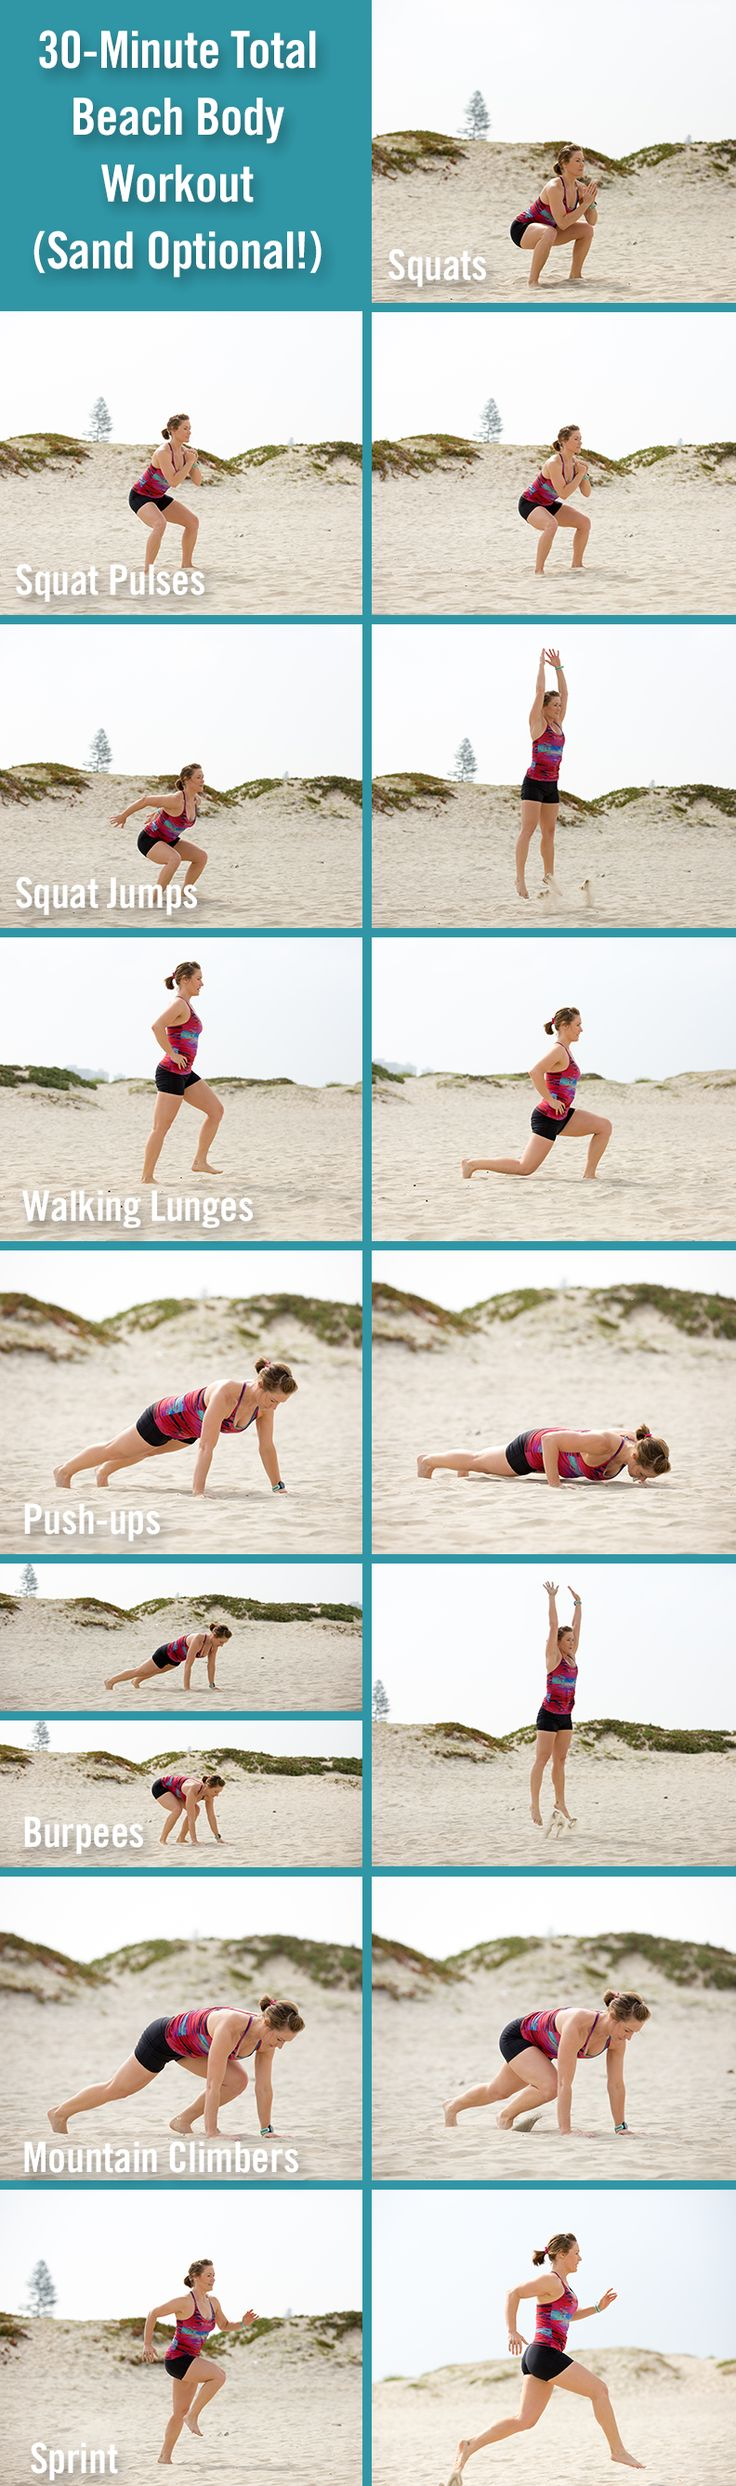 Whether you do it at the beach, the gym or at home, this 30-minute total-body, high-intensity interval workout is effective, efficient and invigorating.